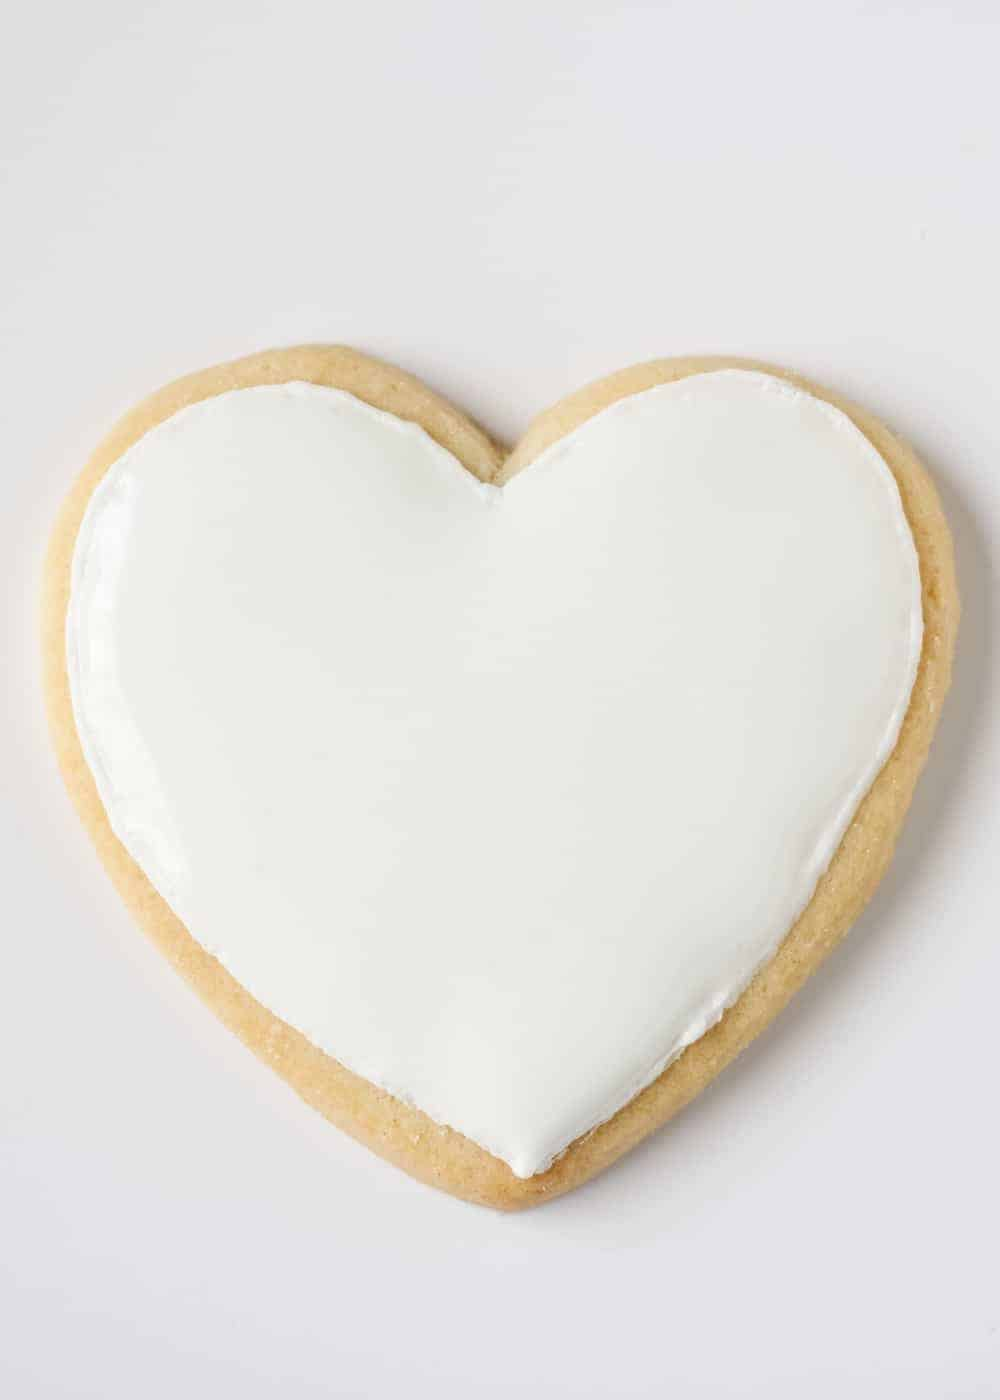 heart shaped sugar cookie decorated with white royal icing